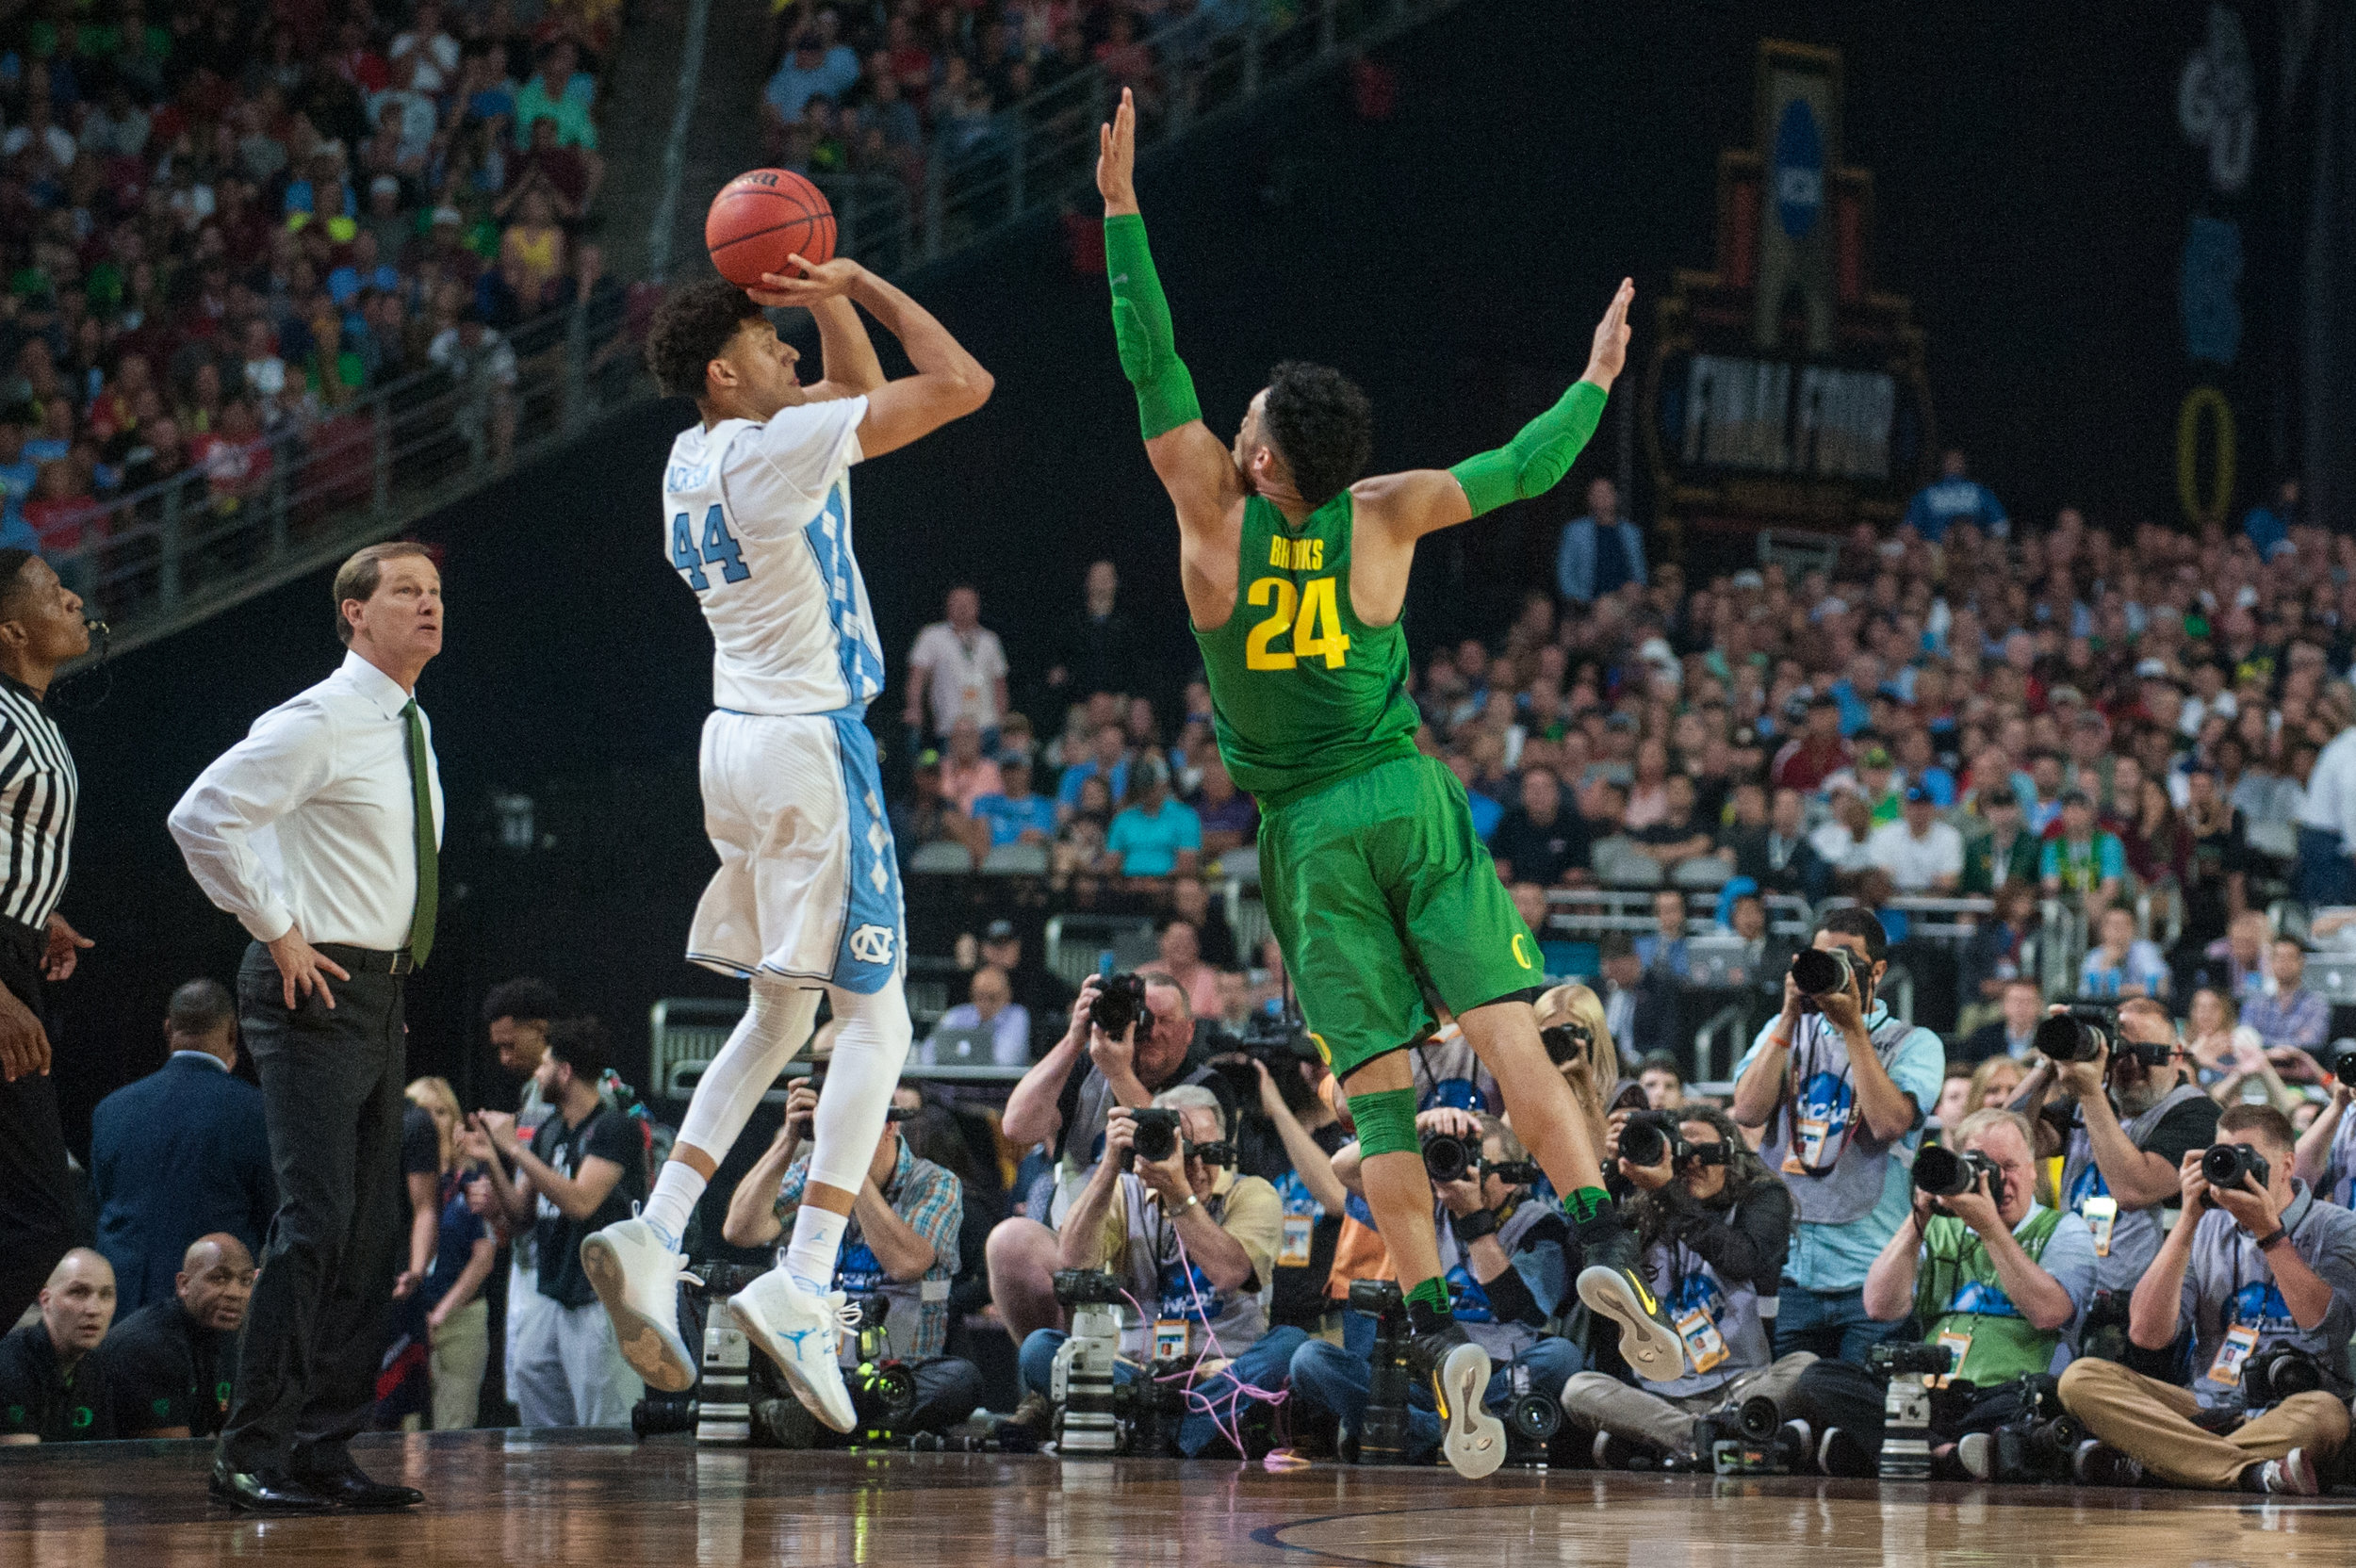 17.03.31.emg.an.final.four.oregon.vs.north.carolina-11.jpg